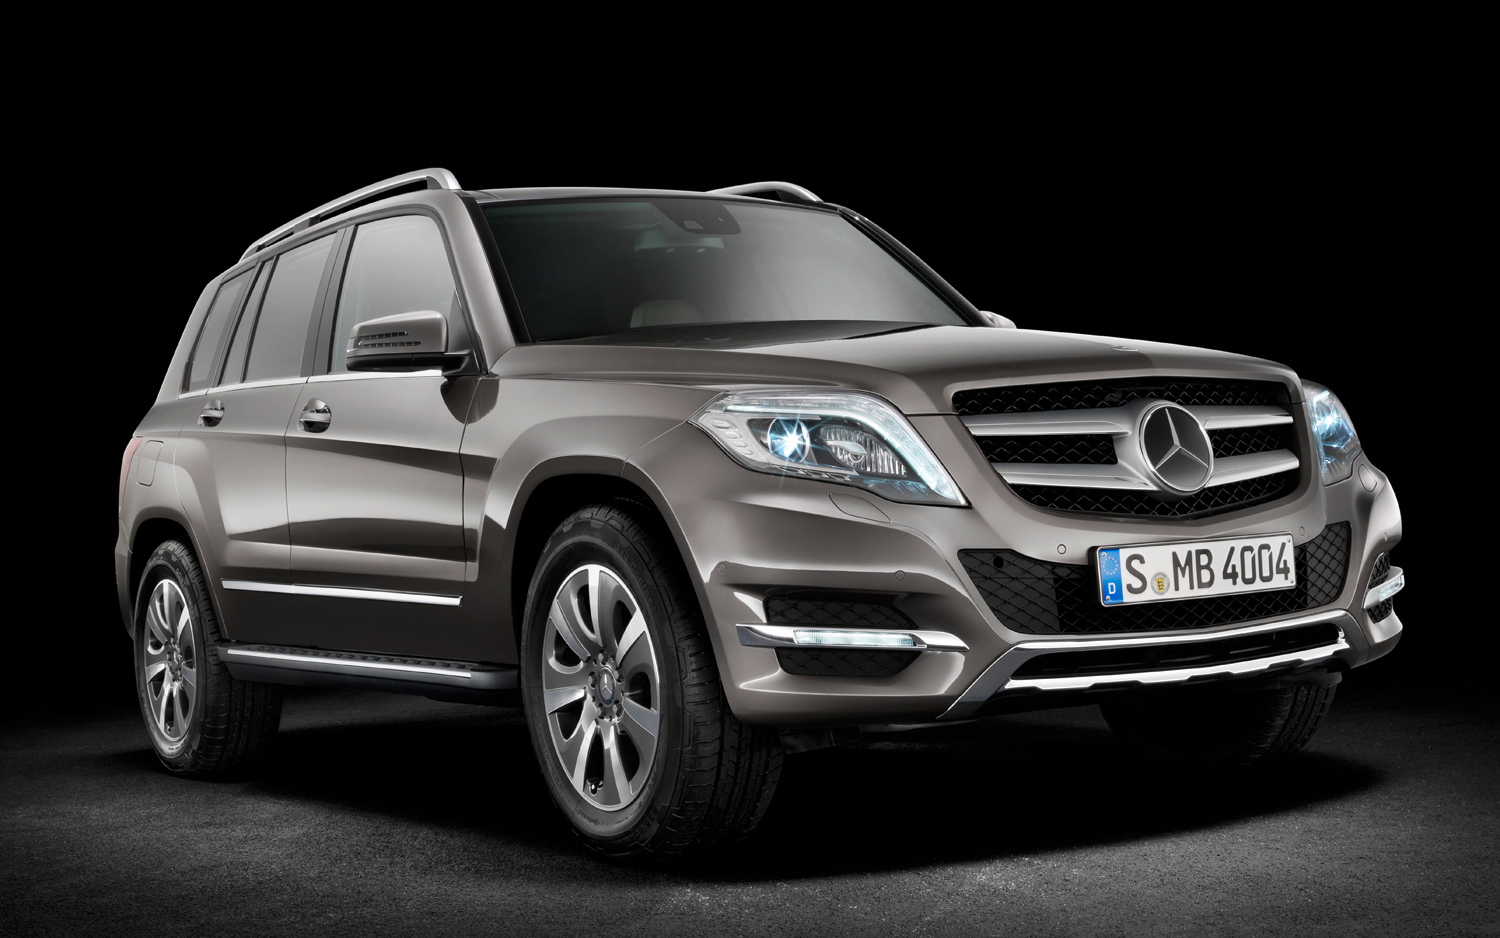 2014 mercedes benz glk 250 bluetec 4matic todd bianco s